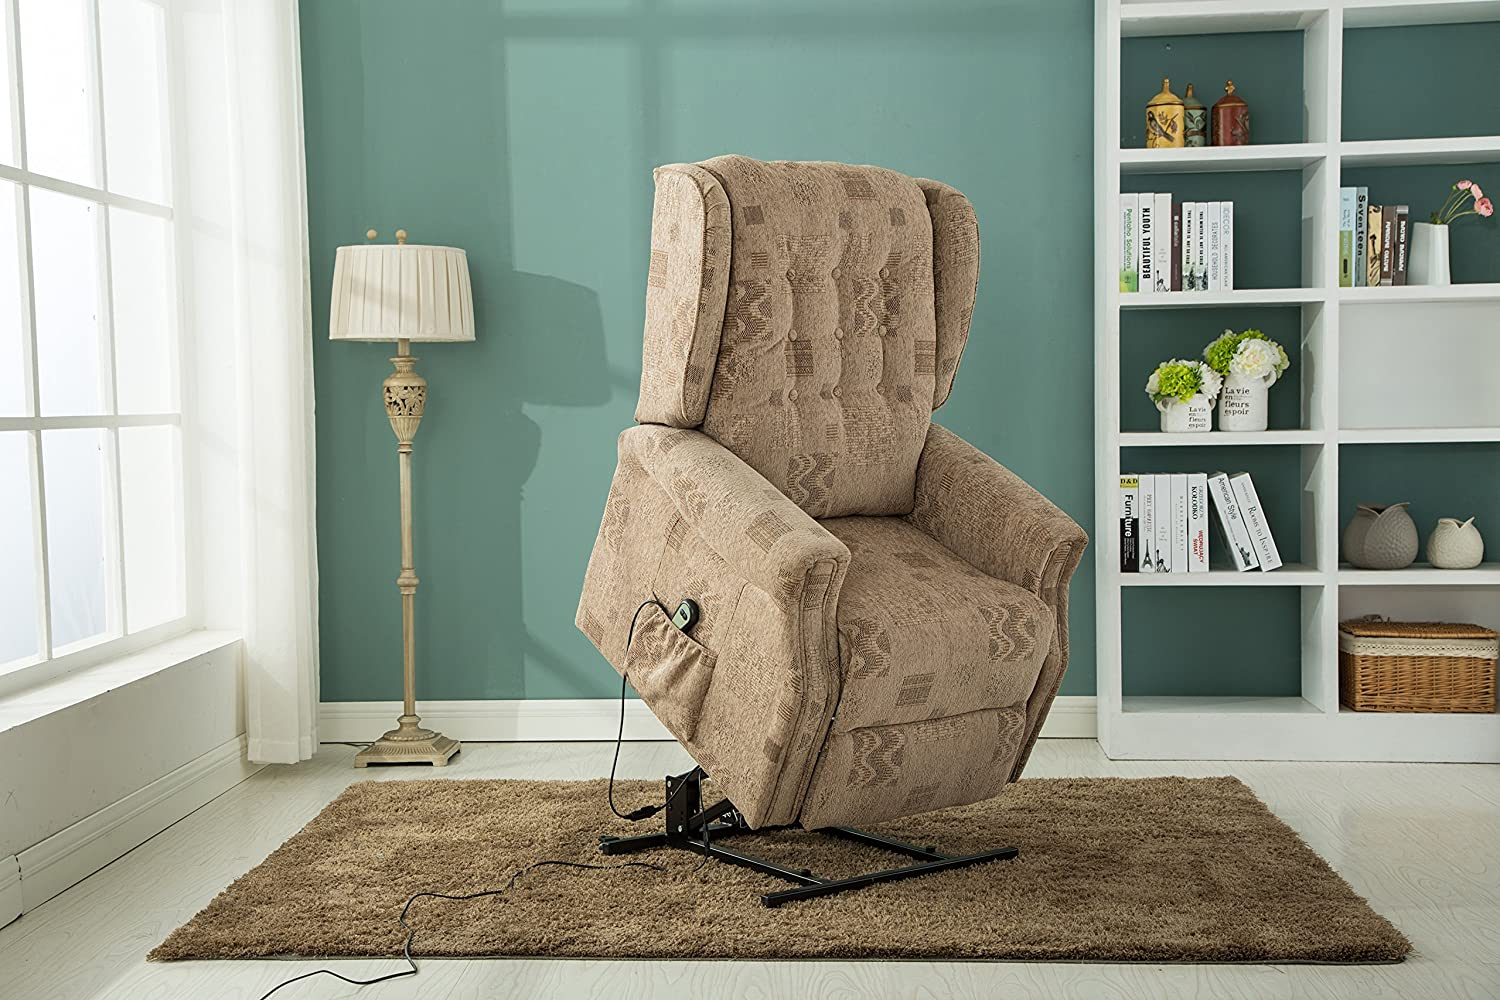 Marvelous Birlea Ashworth Fabric Motorised Rise Recline Chair Wheat Unemploymentrelief Wooden Chair Designs For Living Room Unemploymentrelieforg